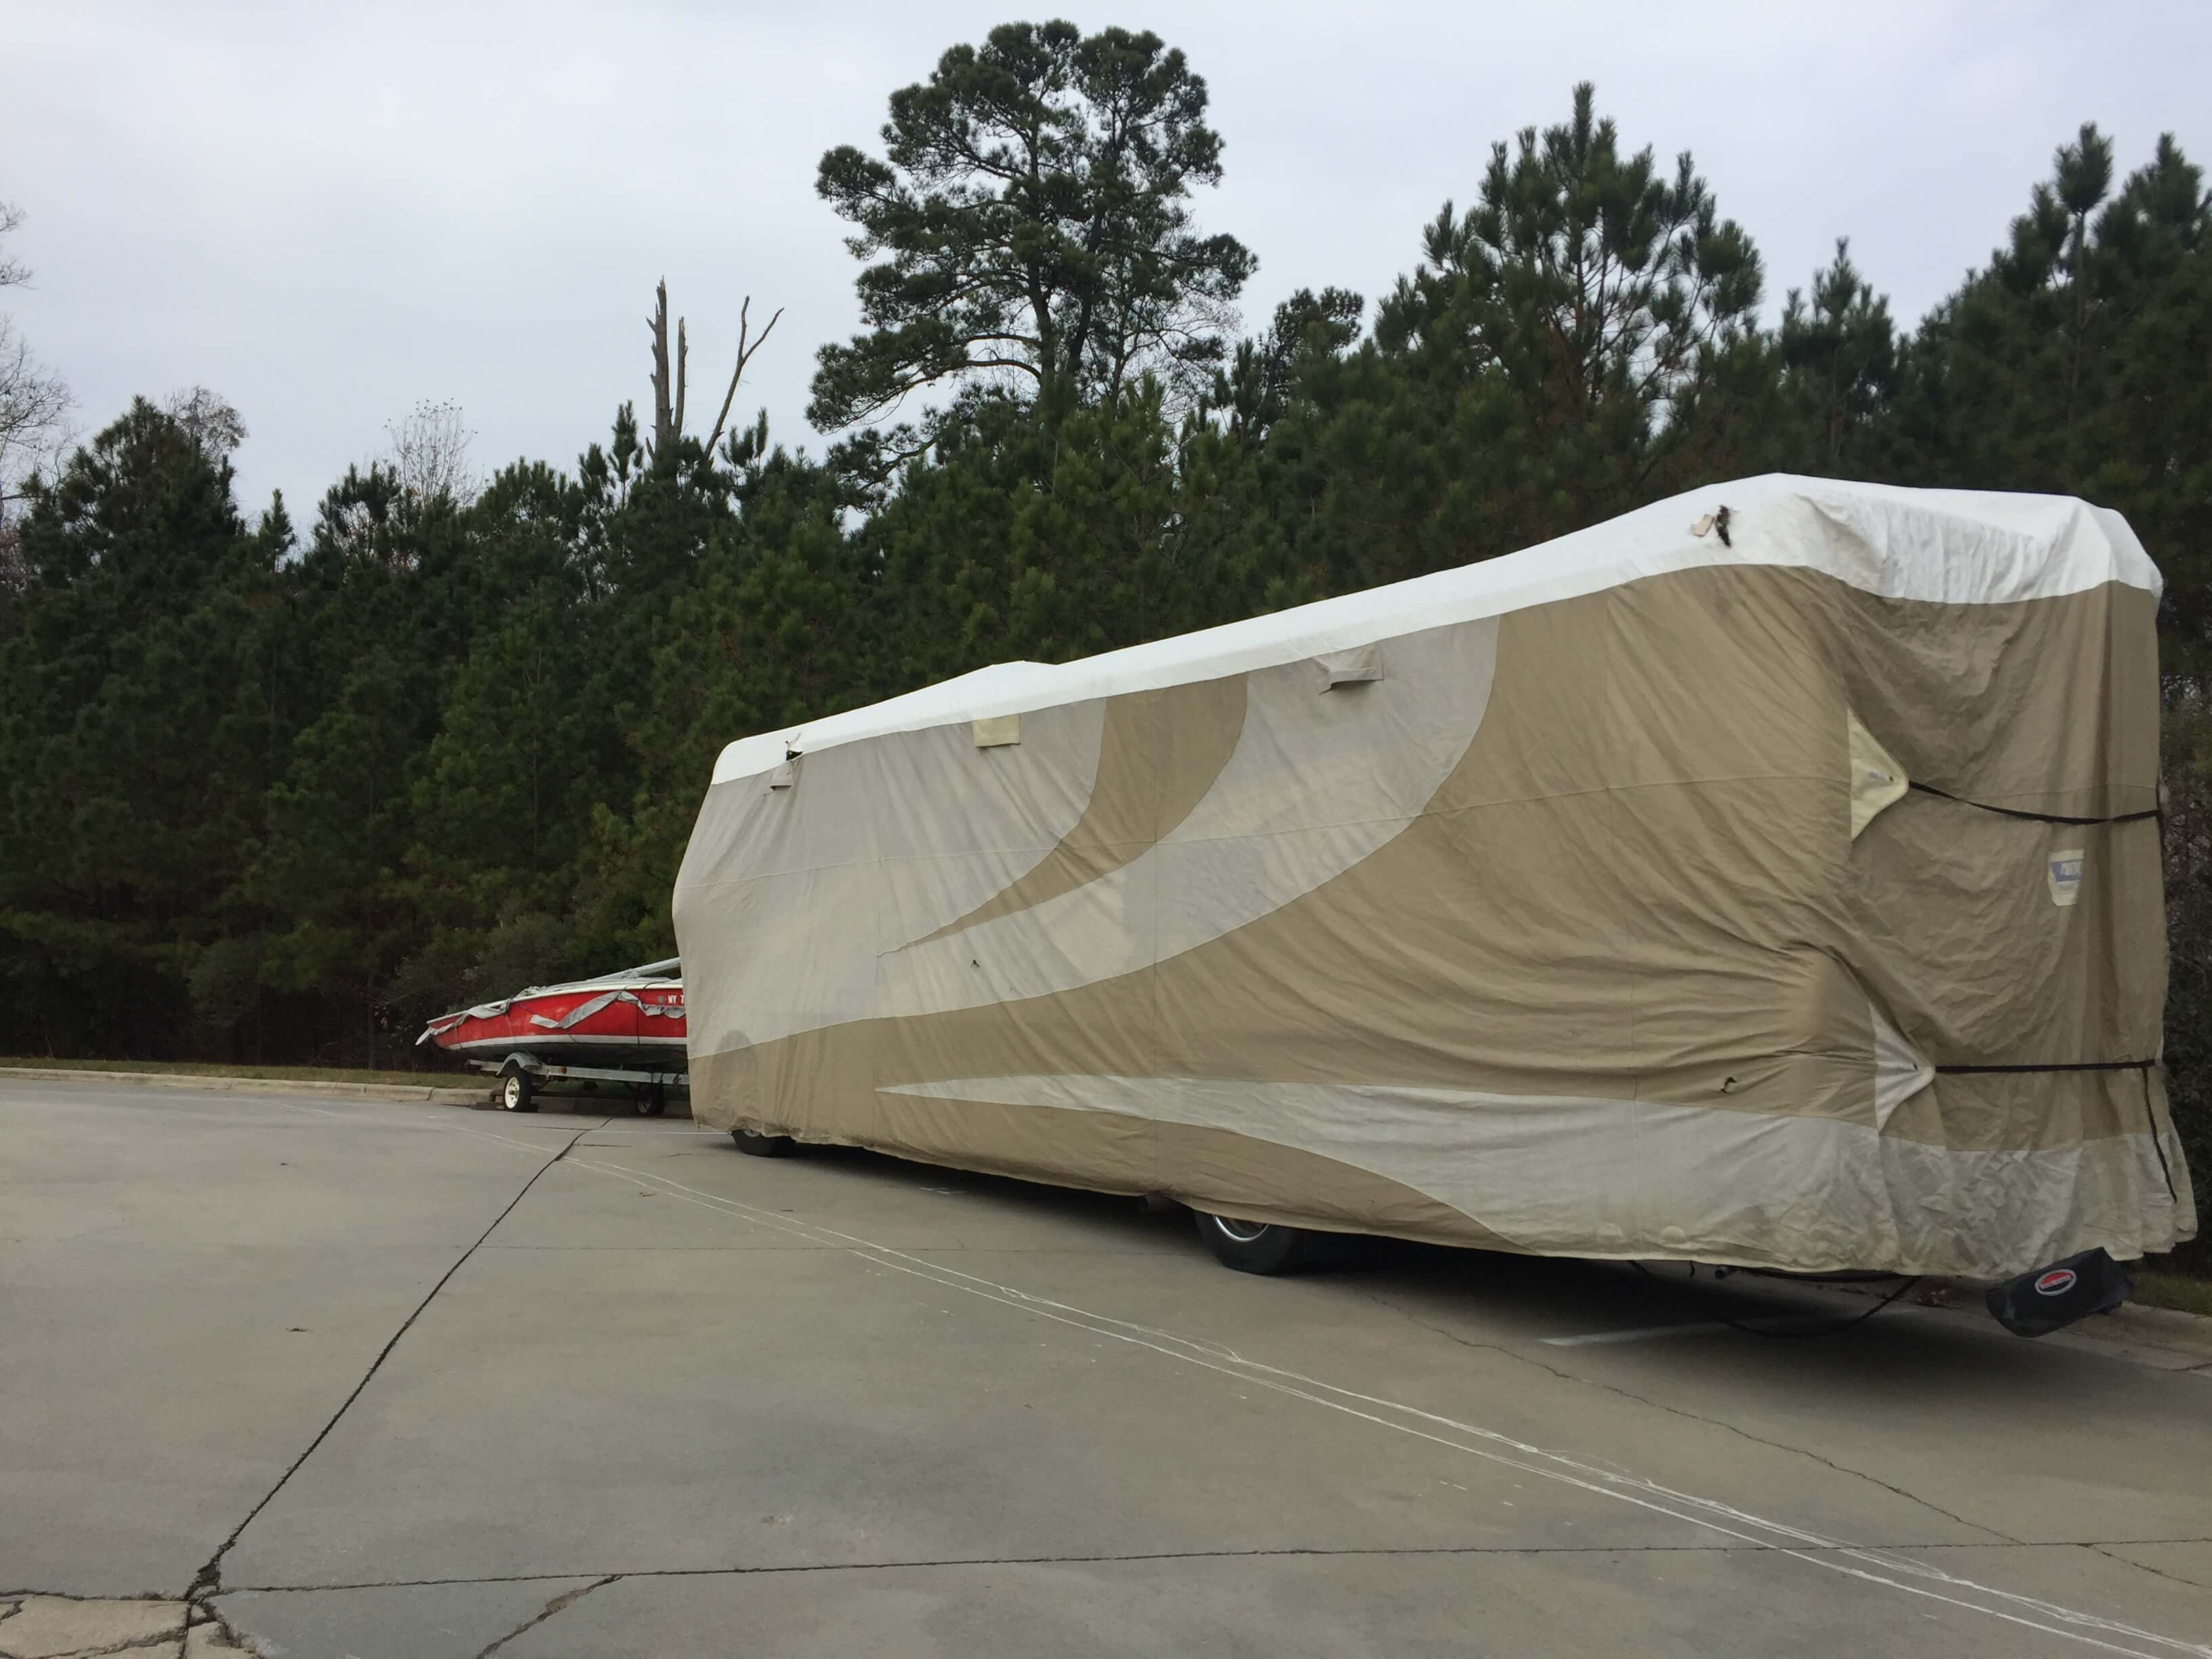 RV parking at Smart Stop self storage facility located at 120 Centrewest Ct, Cary North Carolina